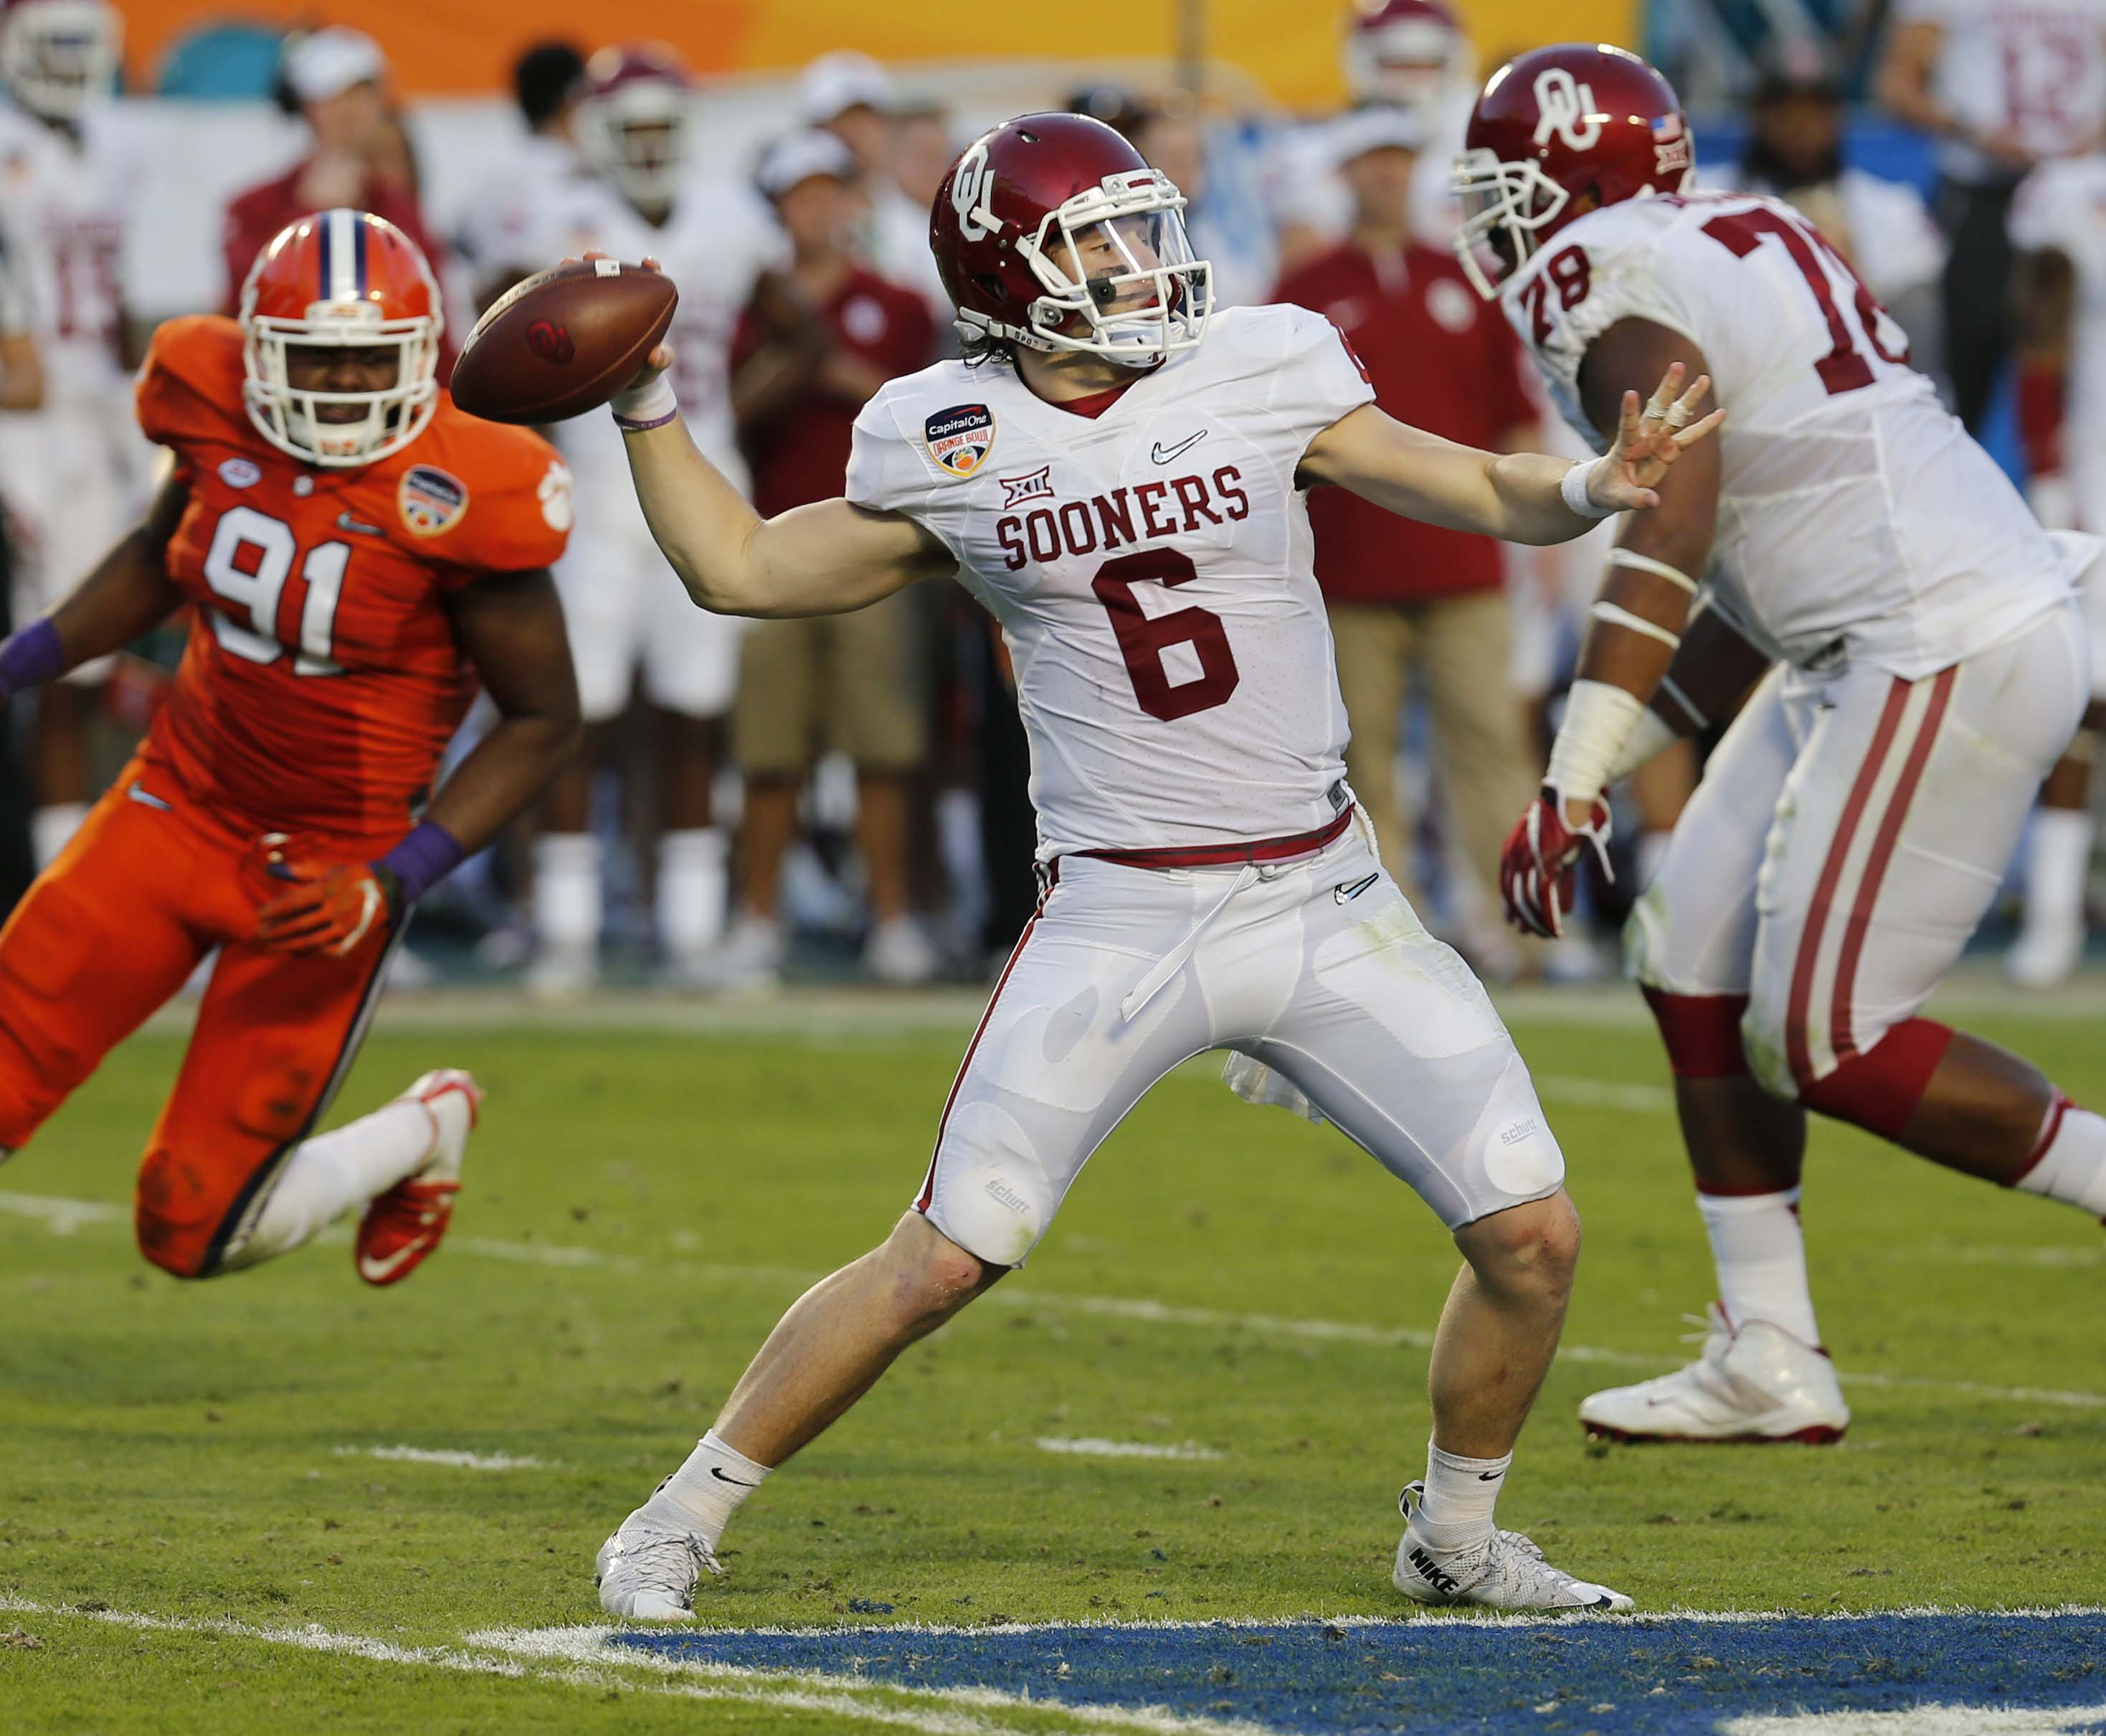 Oklahoma quarterback Baker Mayfield (6) looks to pass during the first half of the Orange Bowl NCAA college football semifinal playoff game against Clemson, Thursday, Dec. 31, 2015, in Miami Gardens, Fla. (AP Photo/Joe Skipper)